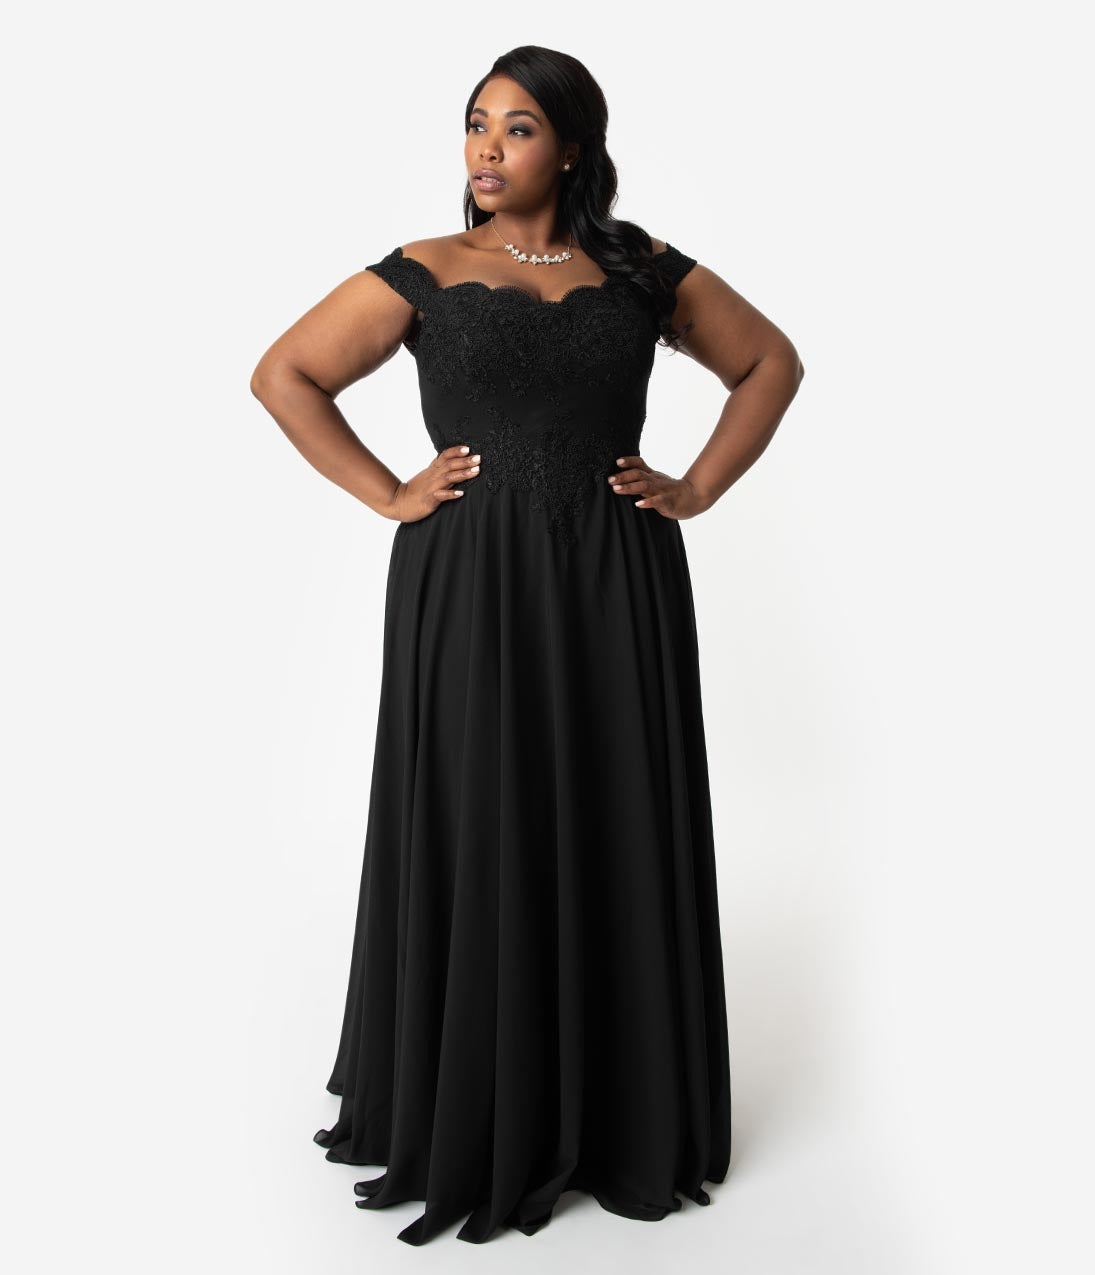 1960s – 70s Cocktail, Party, Prom, Evening Dresses Plus Size Black Lace Off The Shoulder Chiffon Long Gown $110.00 AT vintagedancer.com